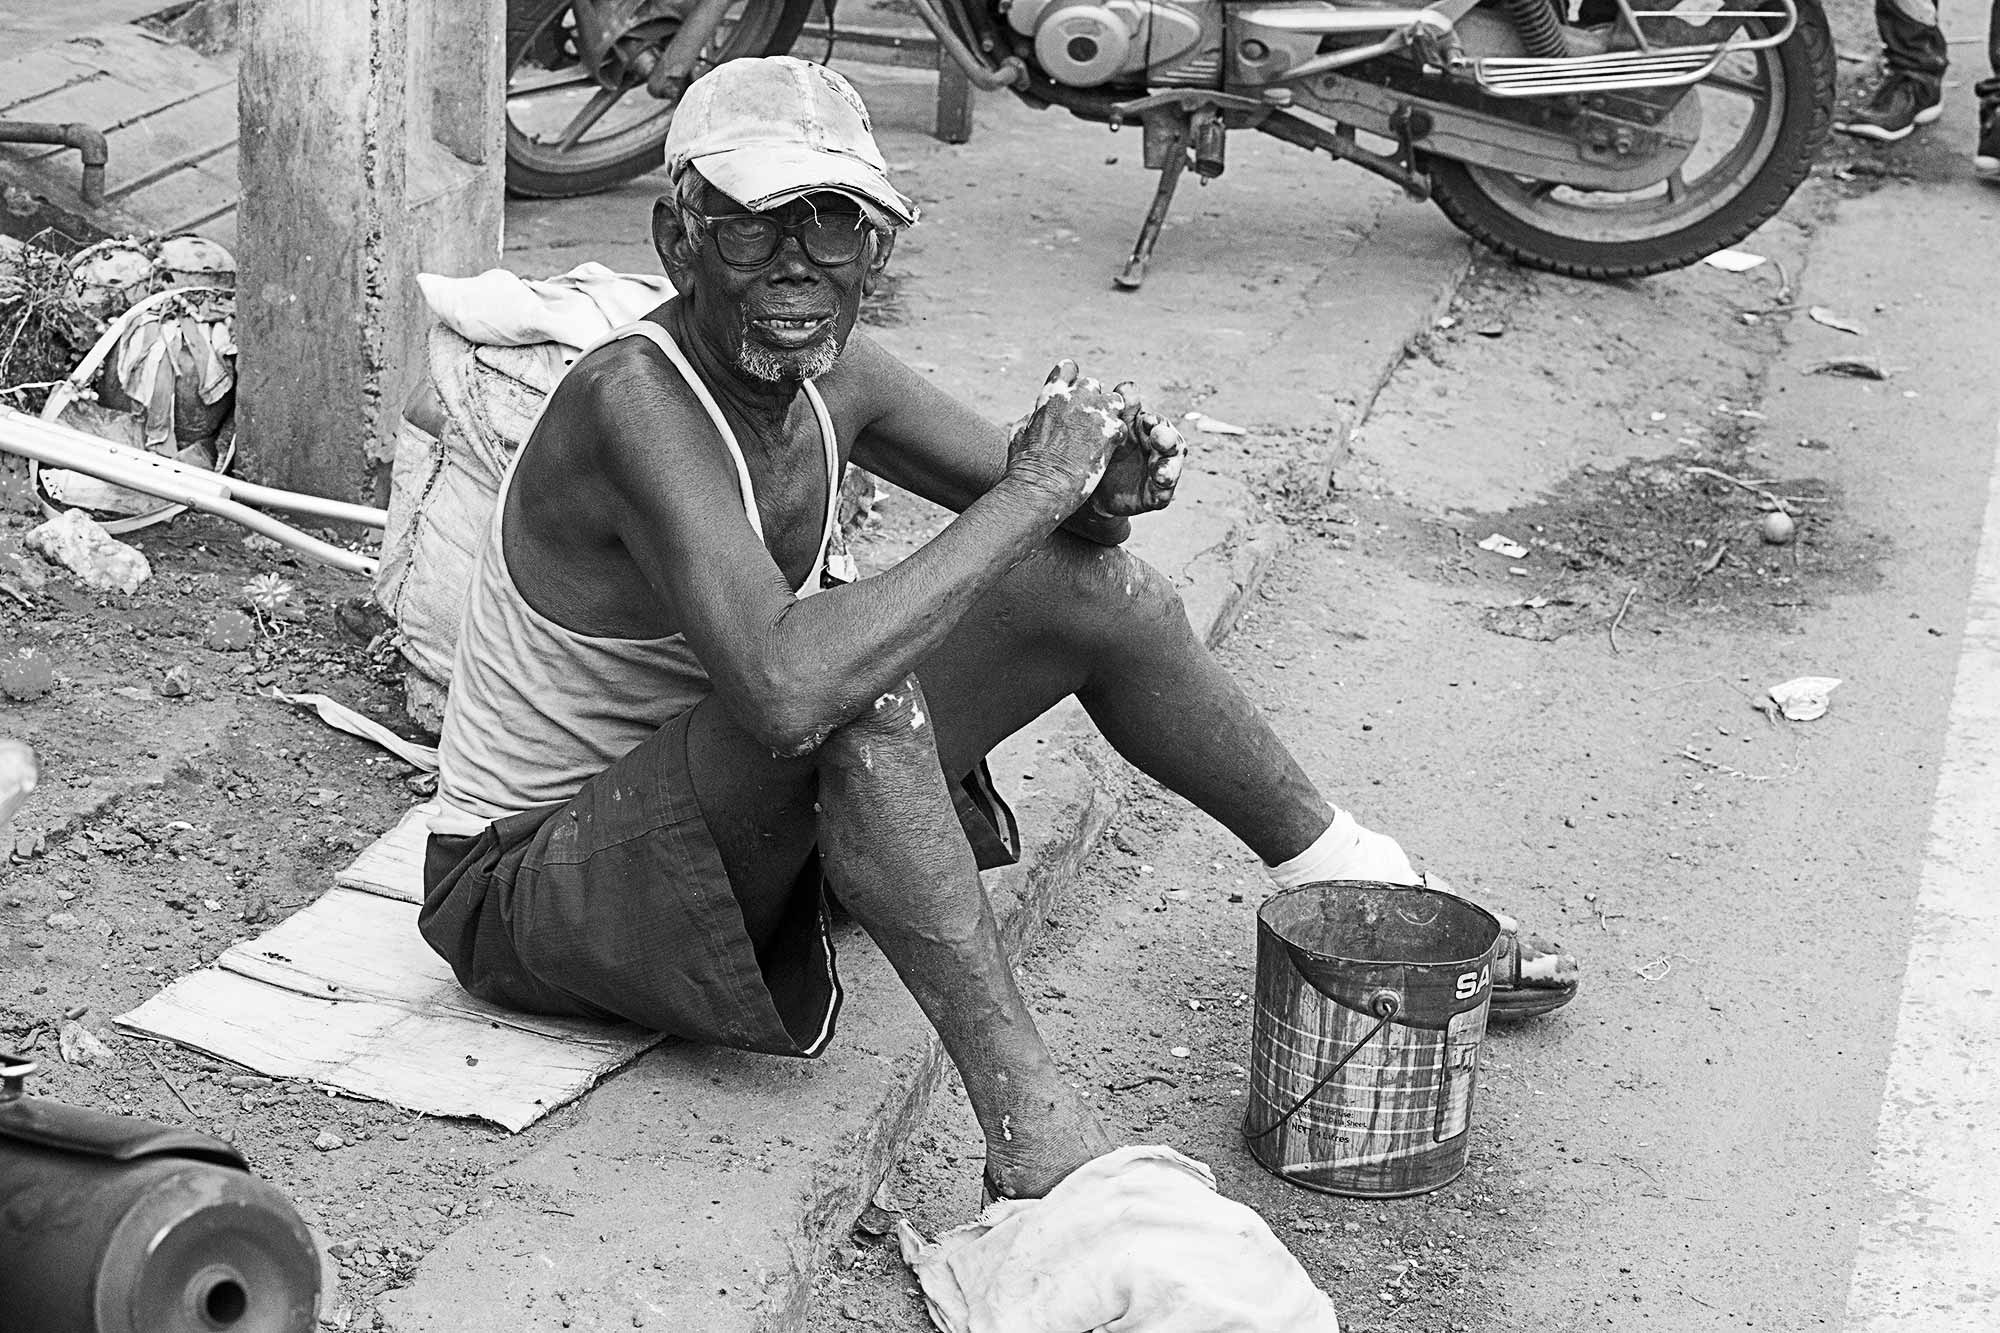 disfigured-man-visakhapatnam-india-1